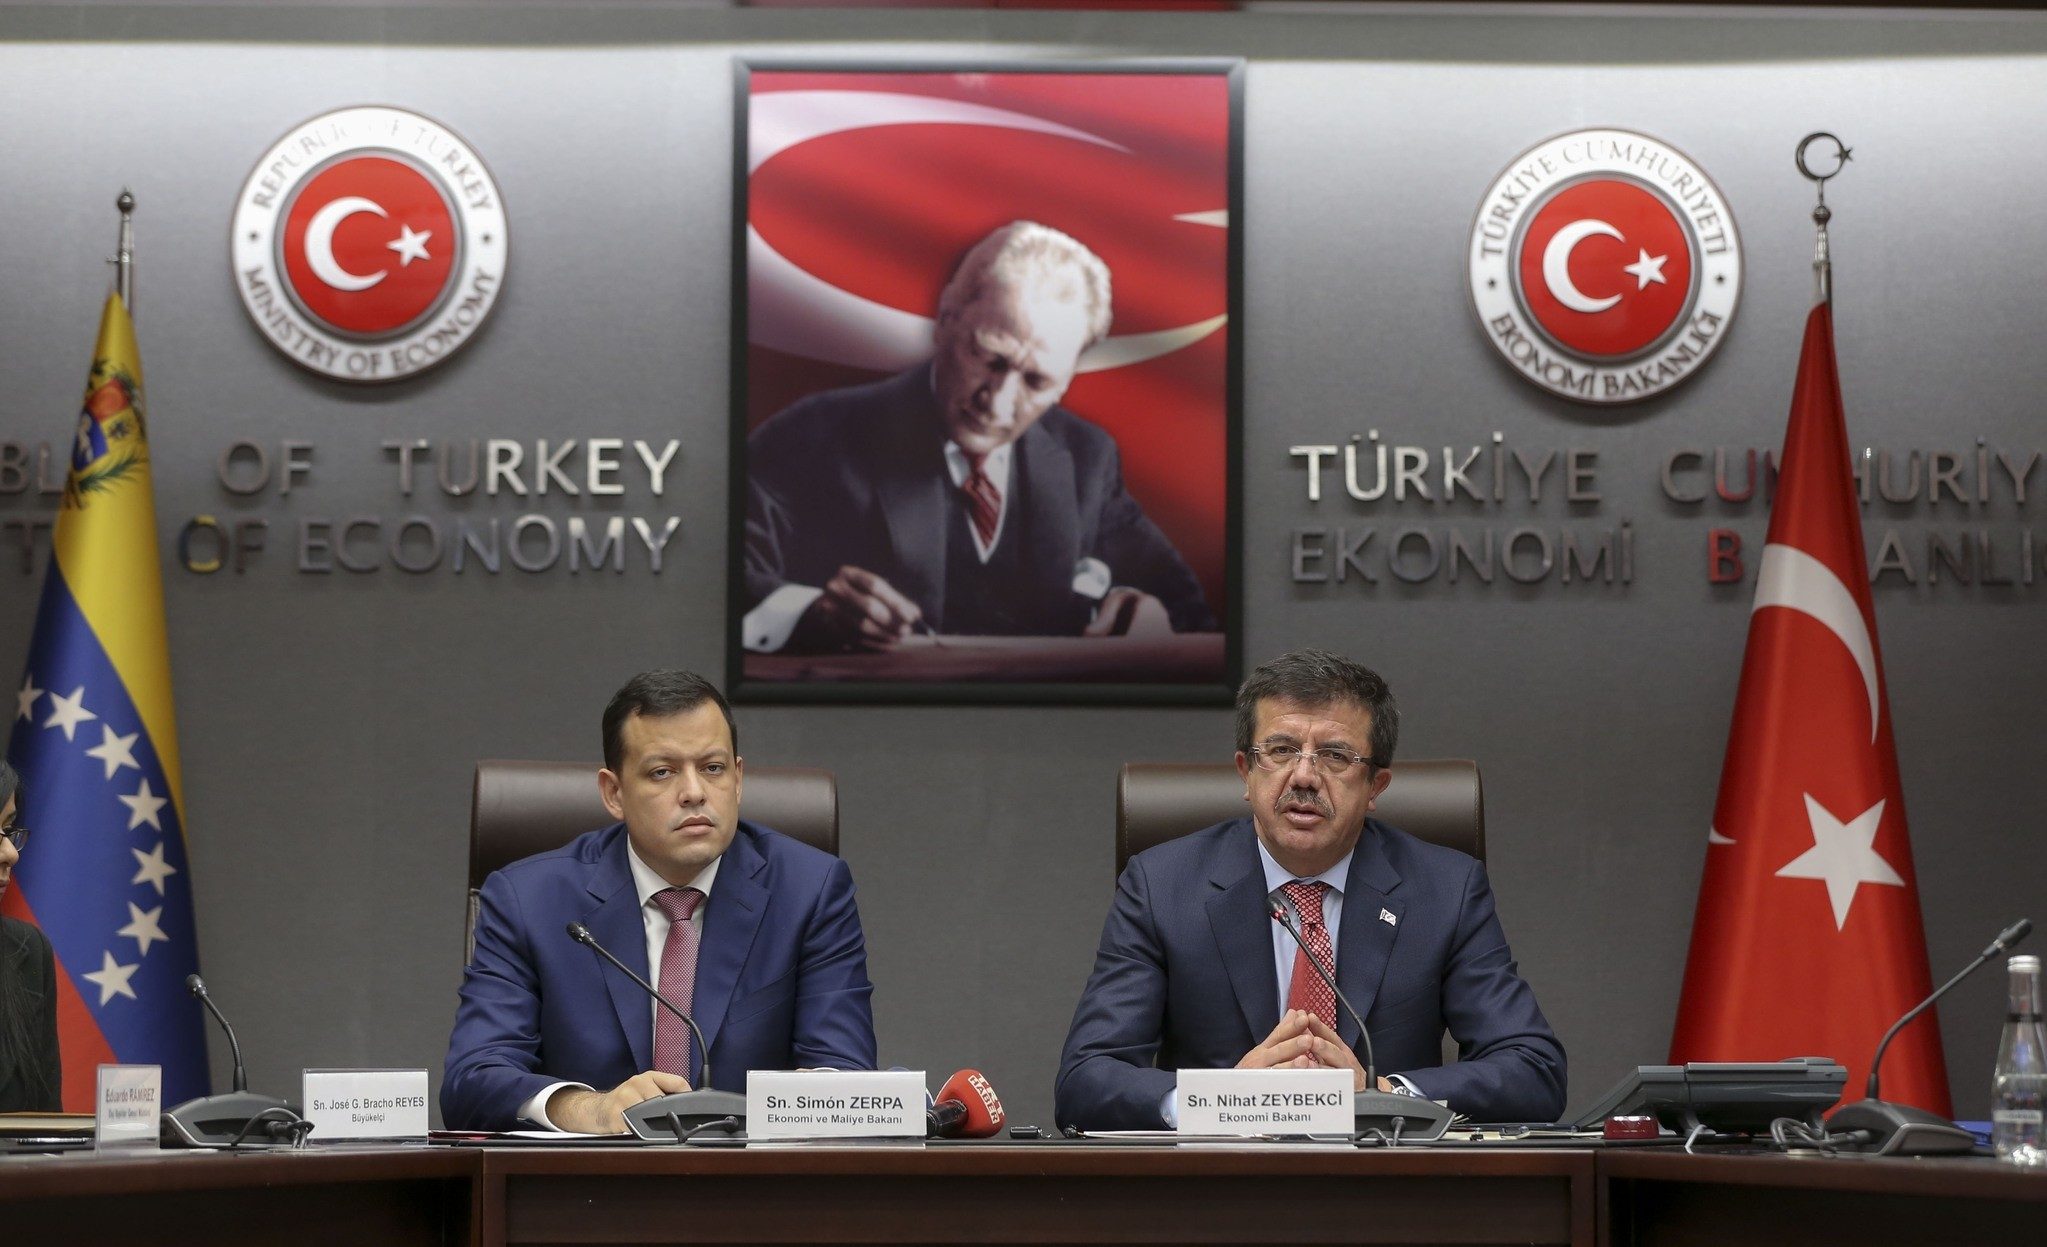 Venezuela's Economy Minister Simon Zerpa met with his Turkish counterpart Nihat Zeybekci in Ankara on Tuesday to discuss trade relations. (AA Photo)